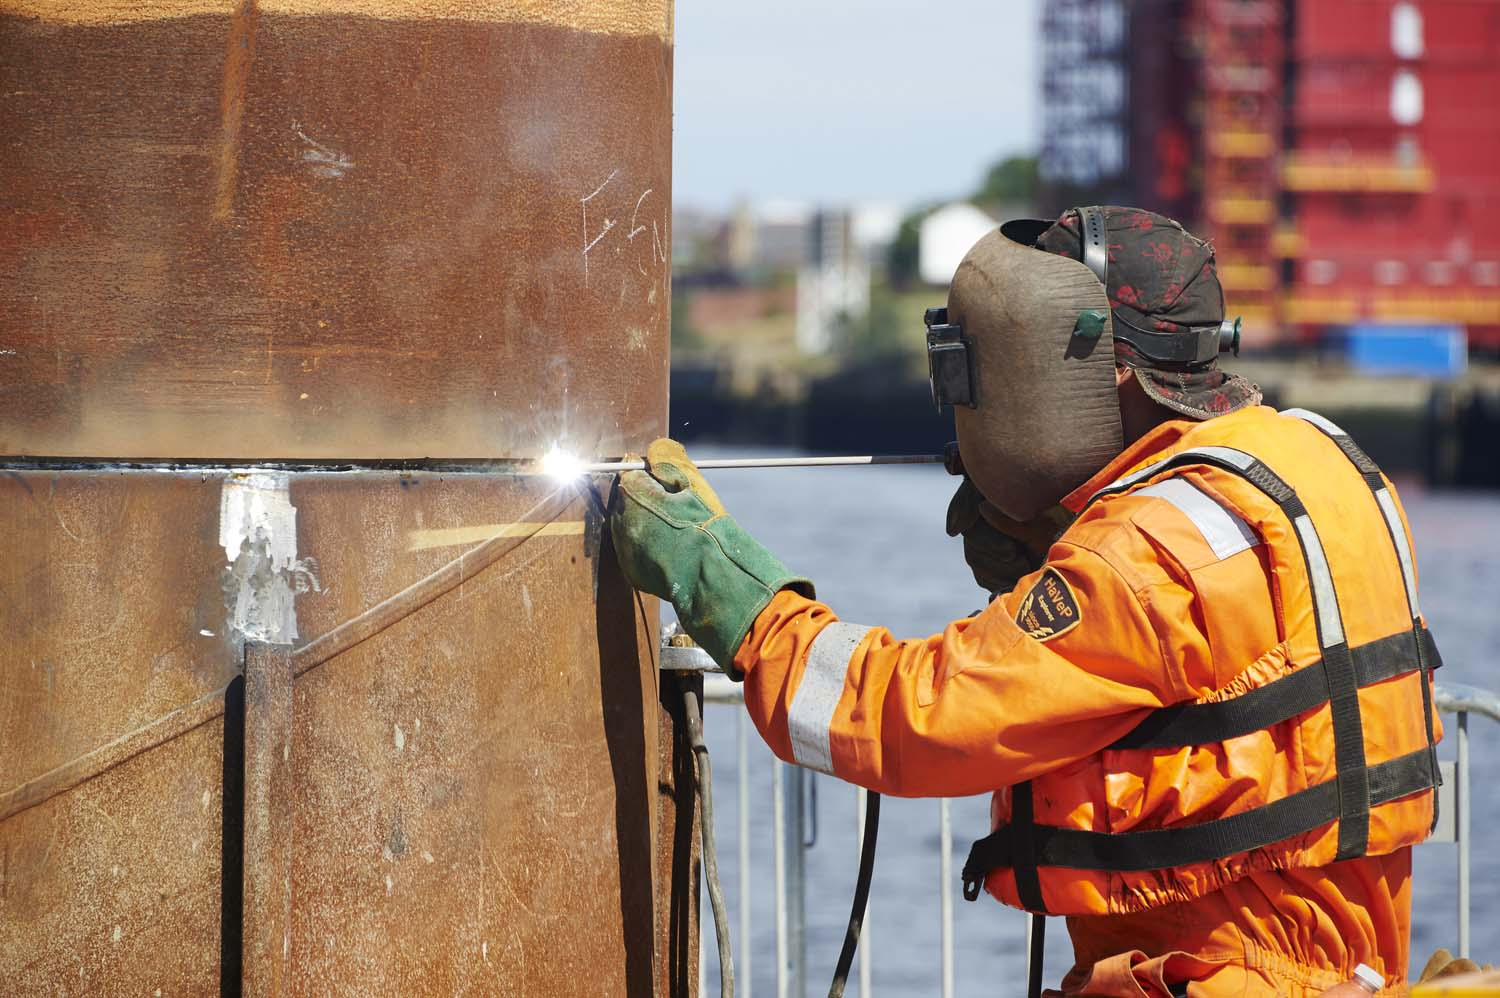 Port of Tyne works for Southbay Civil Engineering